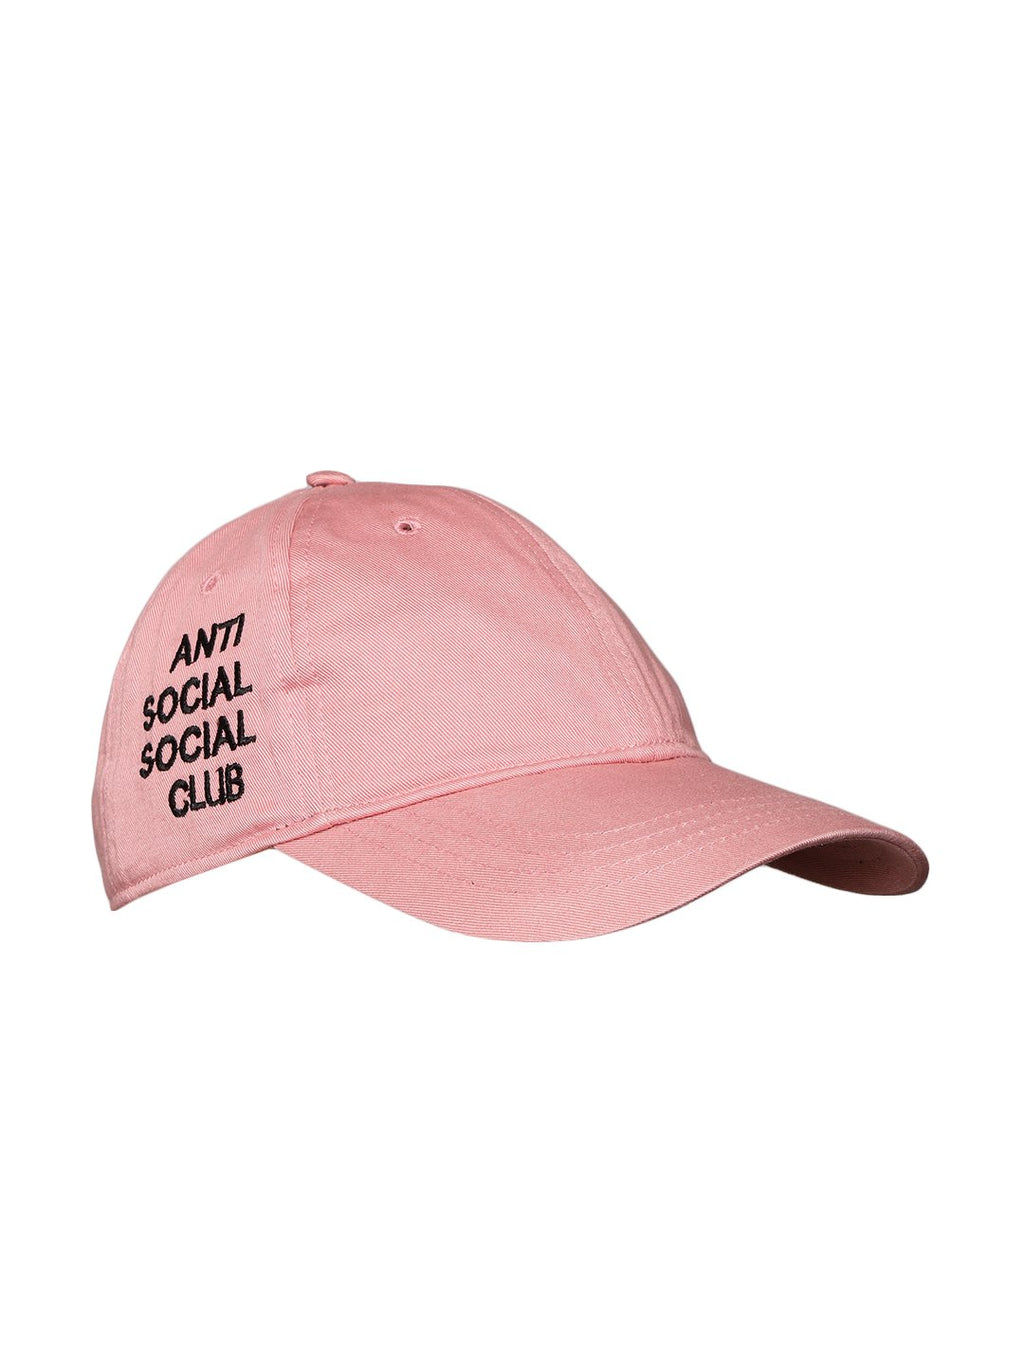 Lazy panda pink color anti social club embroidery cap